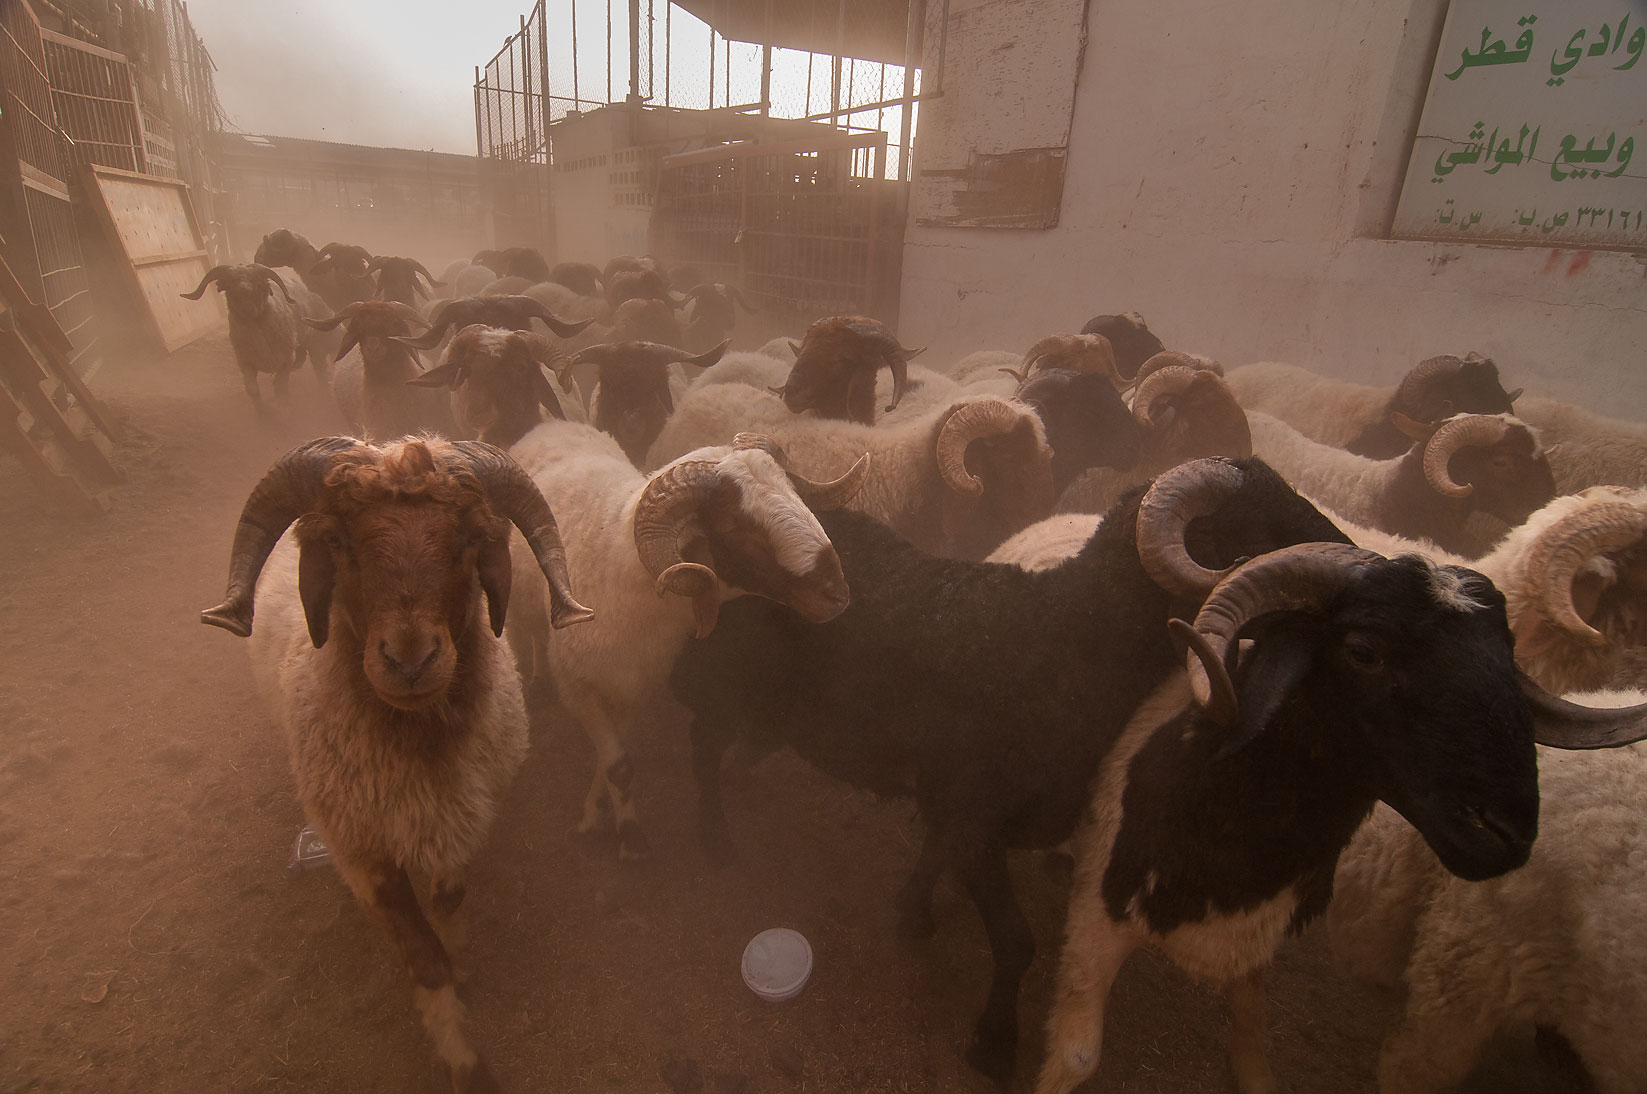 Sheep driven dust storm in Livestock Market, Wholesale Markets area. Doha, Qatar